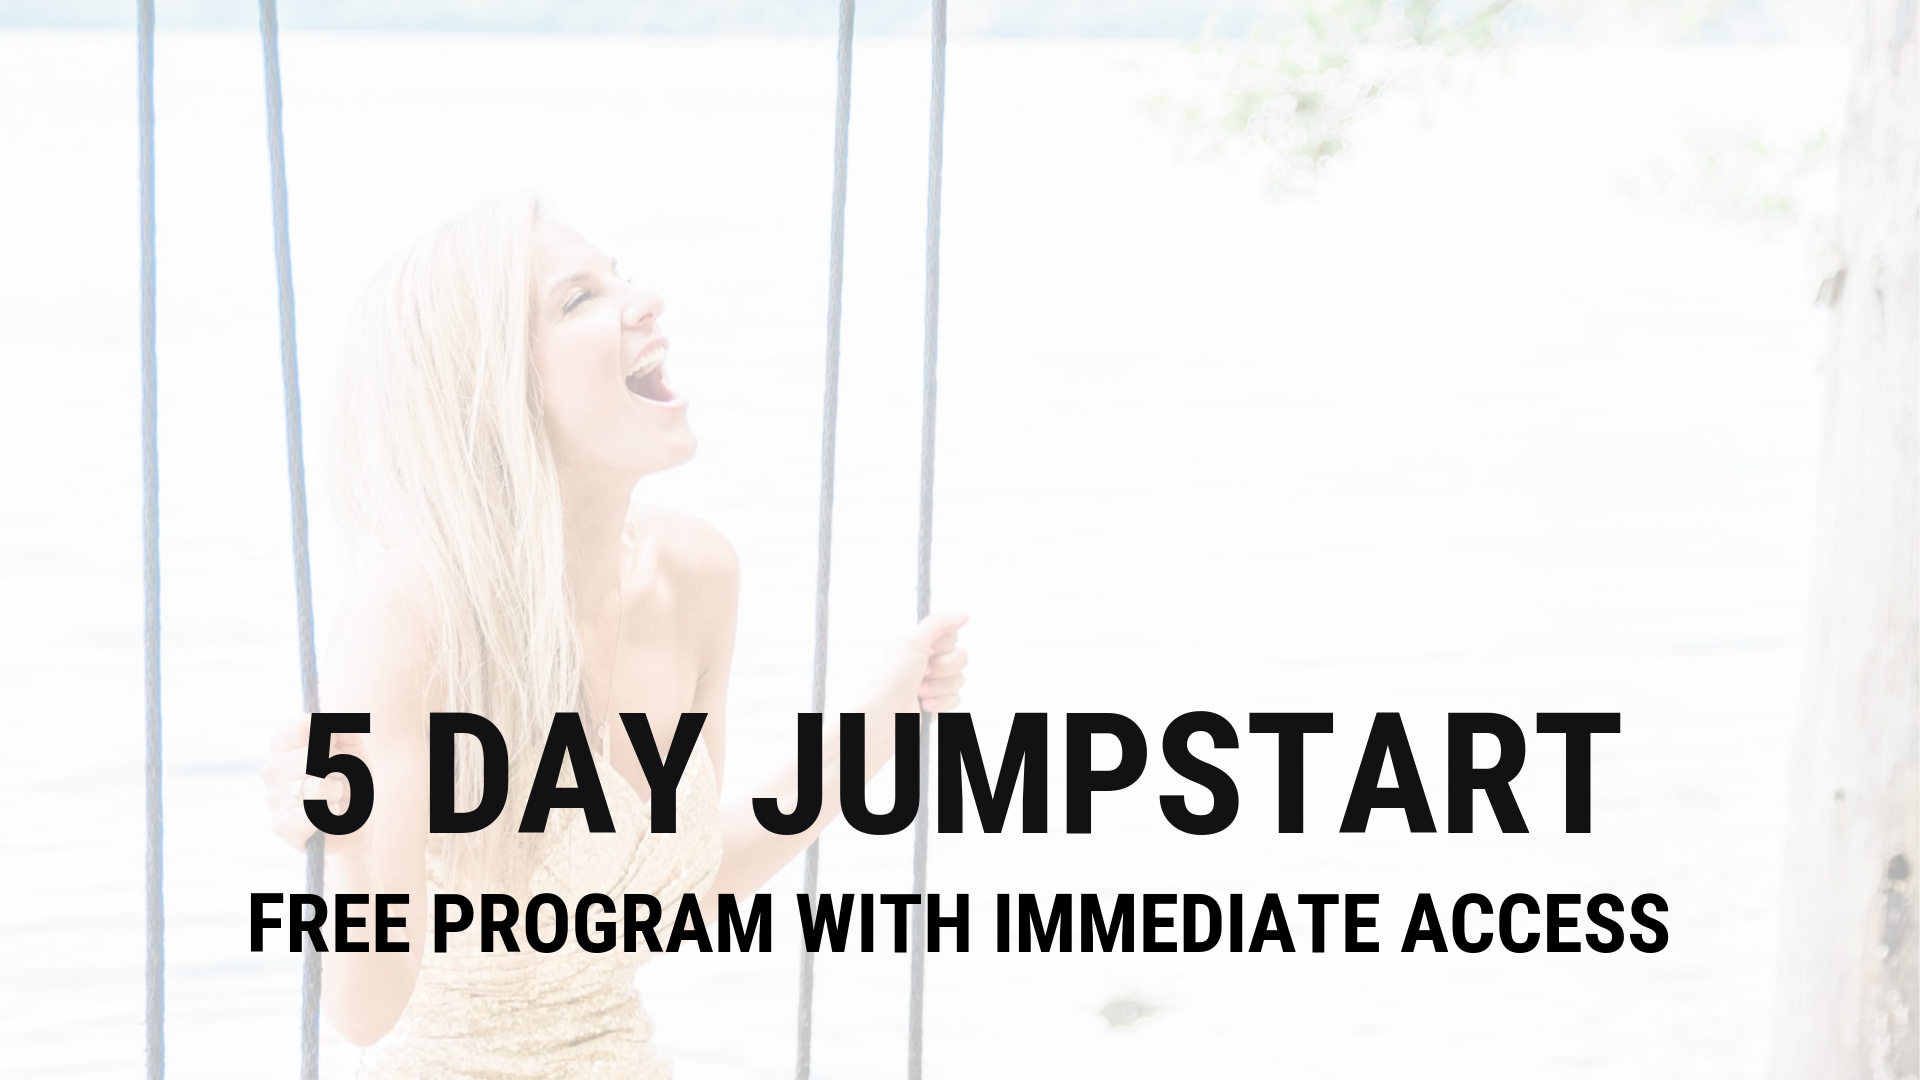 5 DAY JUMPSTART